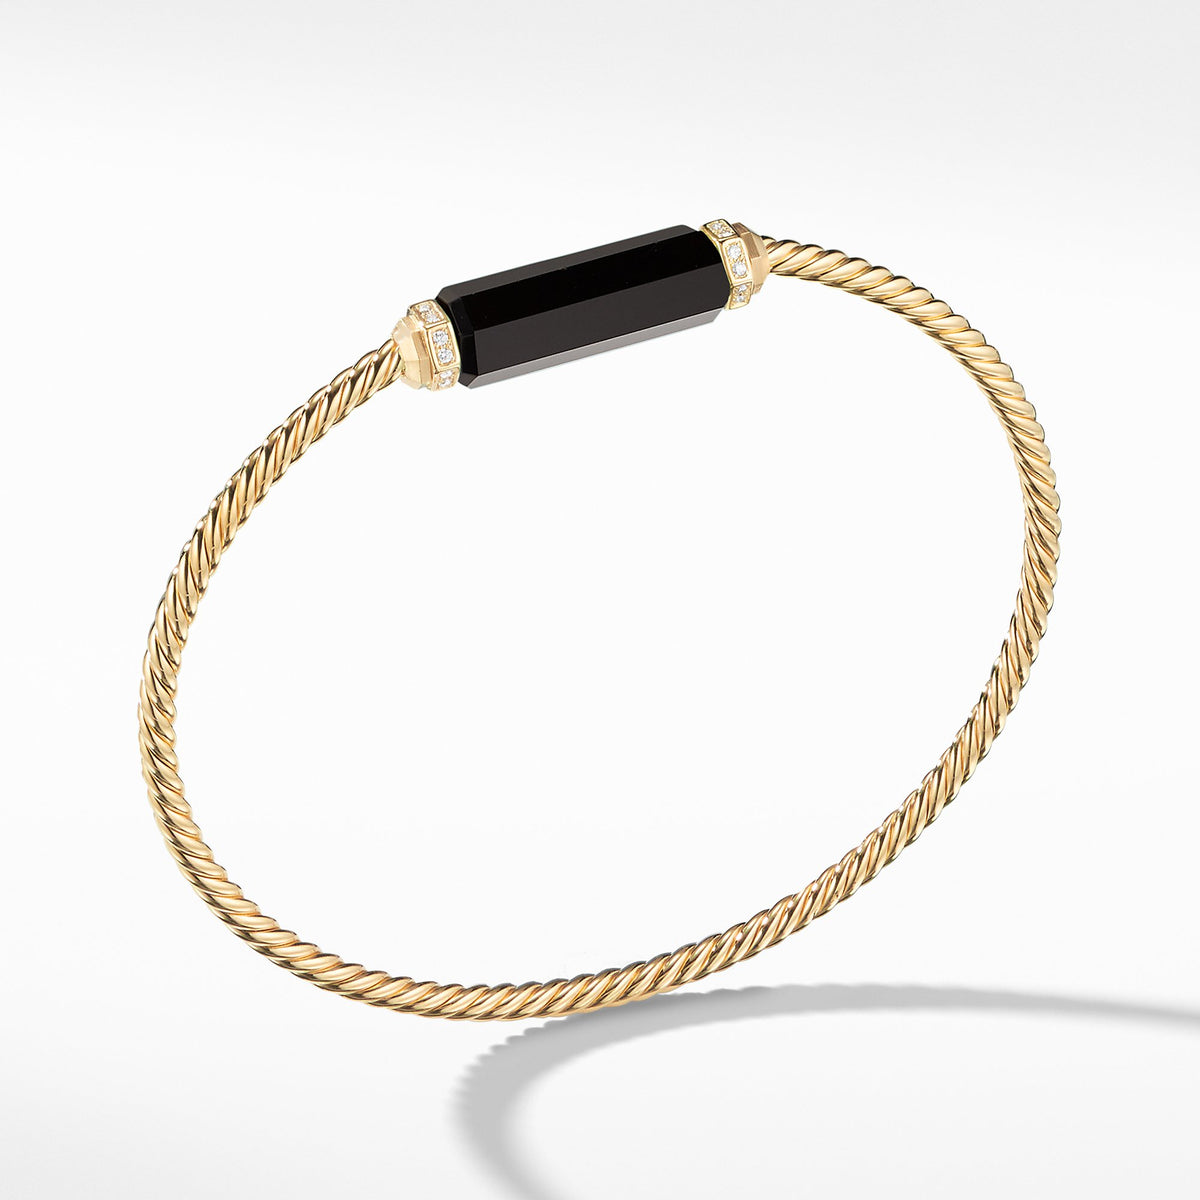 Barrels Bracelet with Diamonds and Black Onyx in 18K Gold